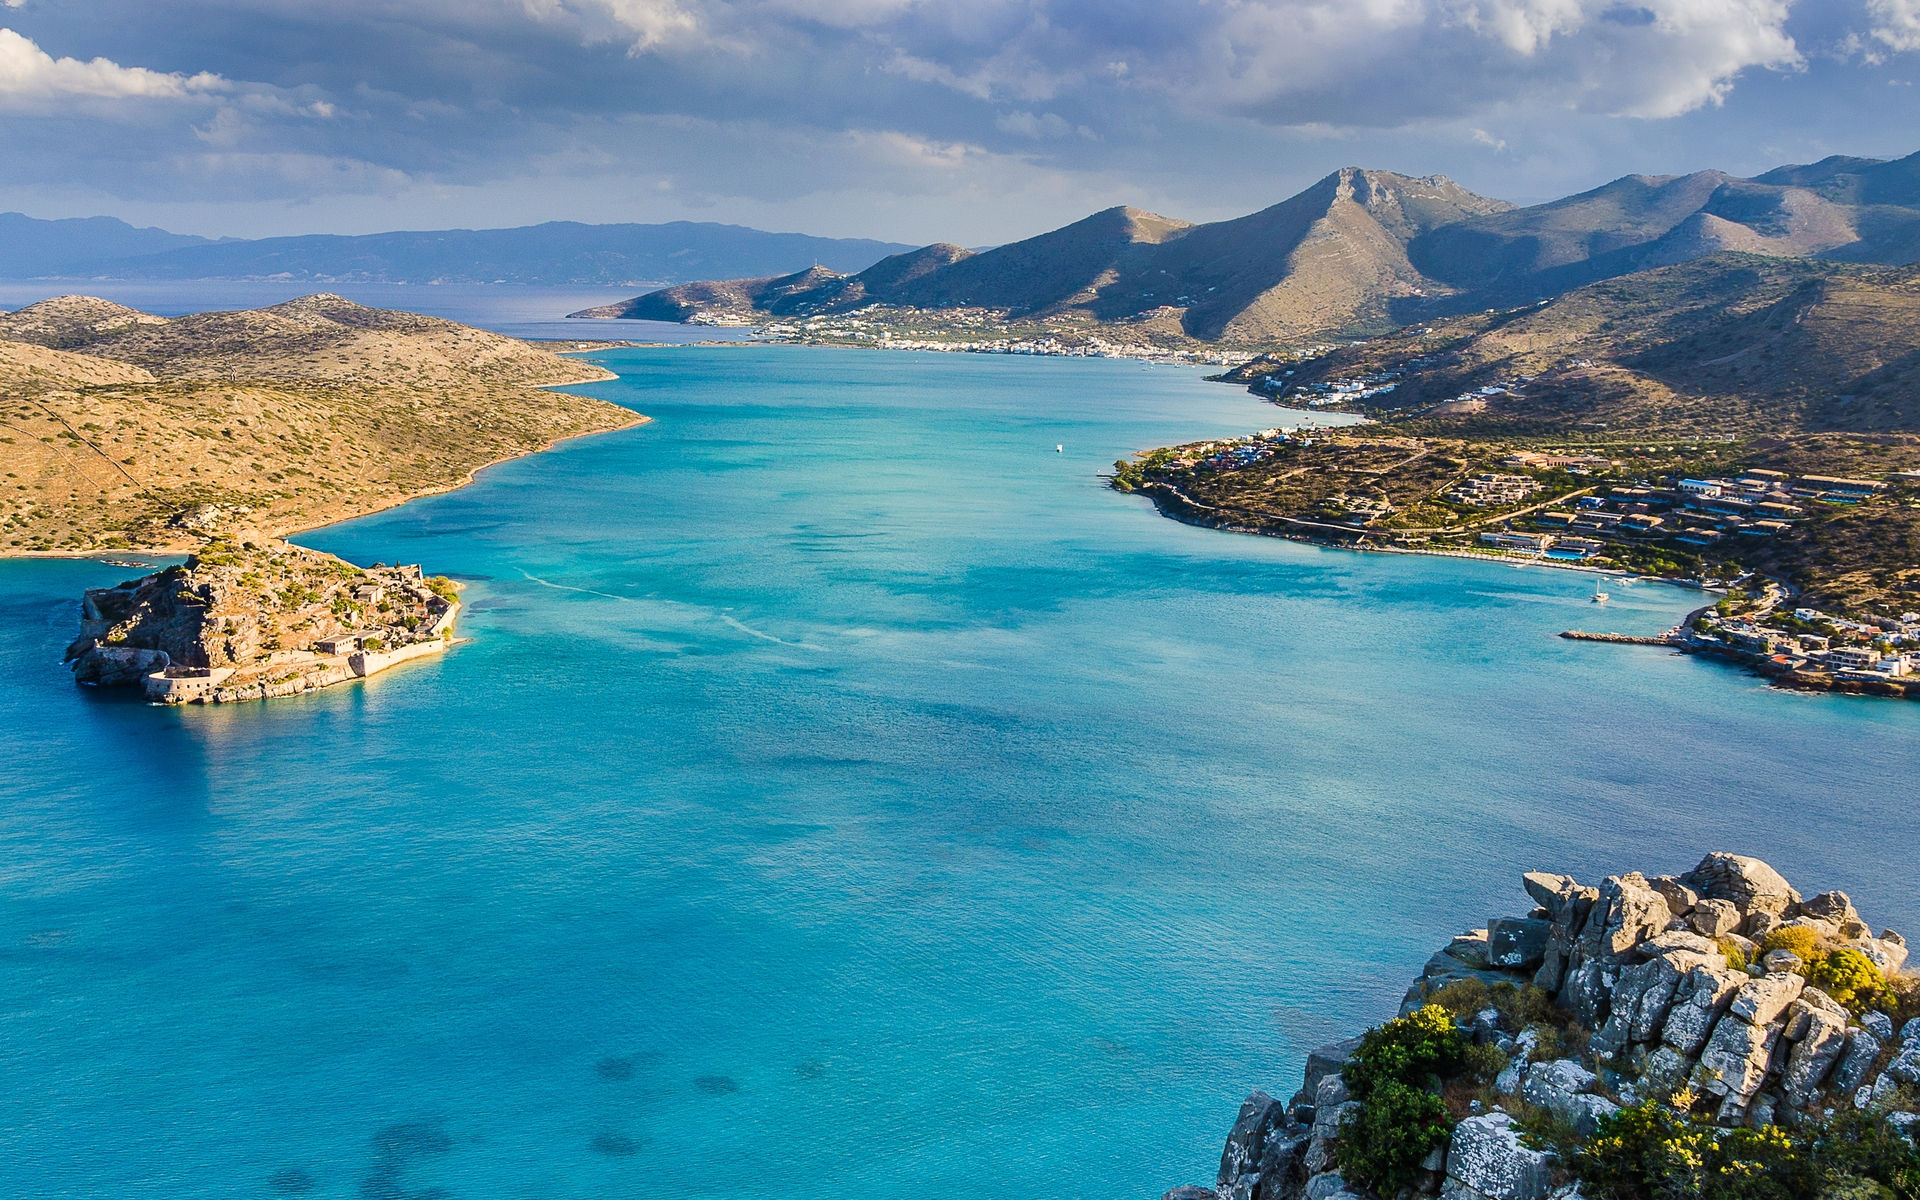 Panoramic view of Spinalonga and the gulf of Elounda